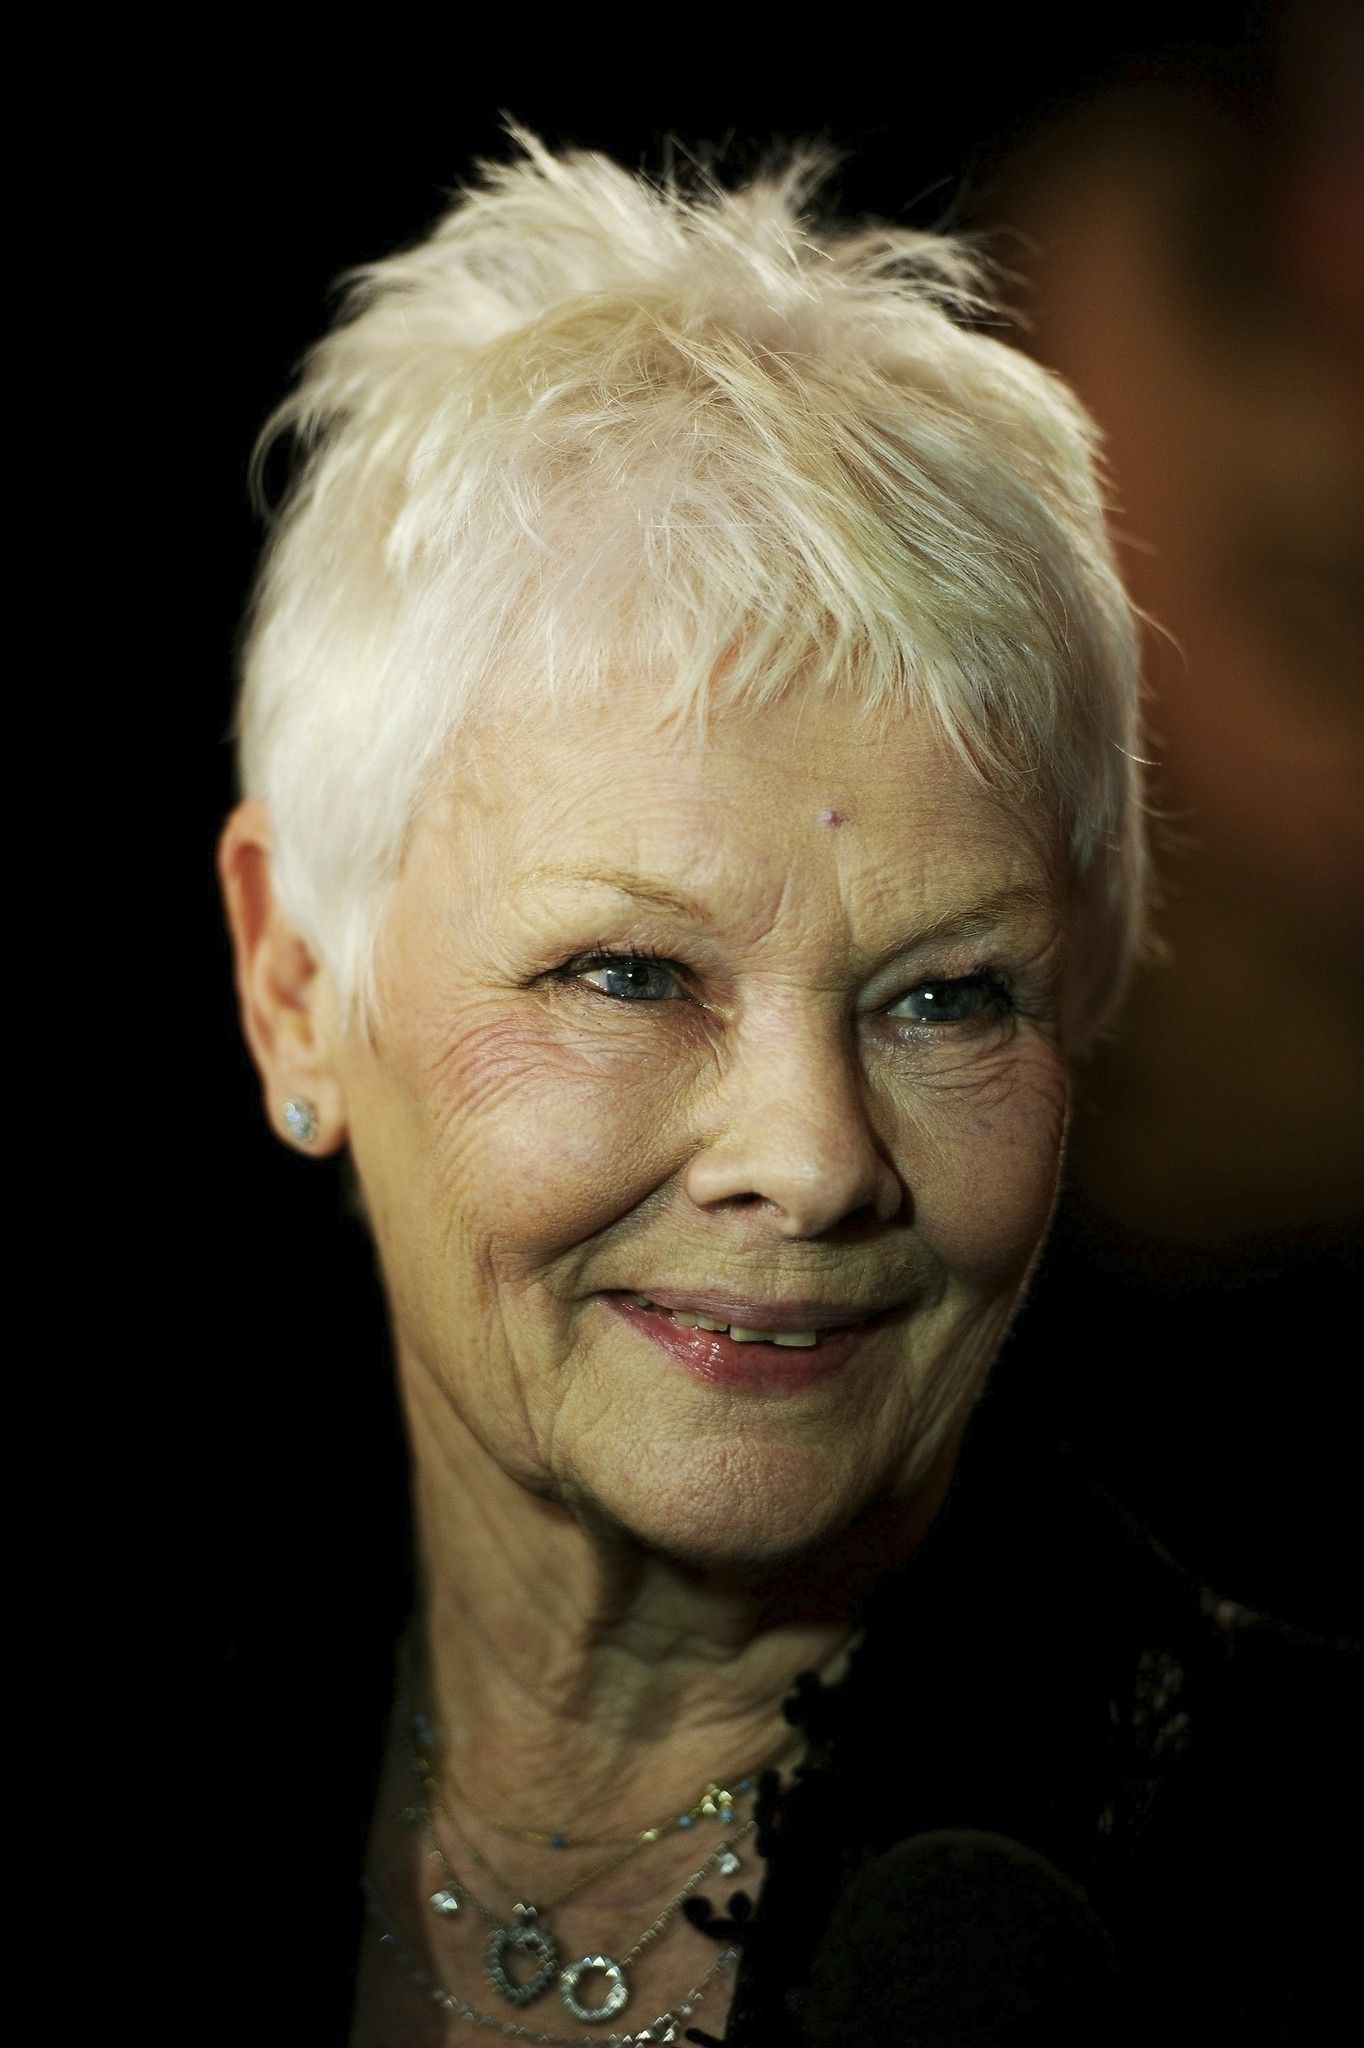 Pictures: Cruise ship godmothers - Judi Dench